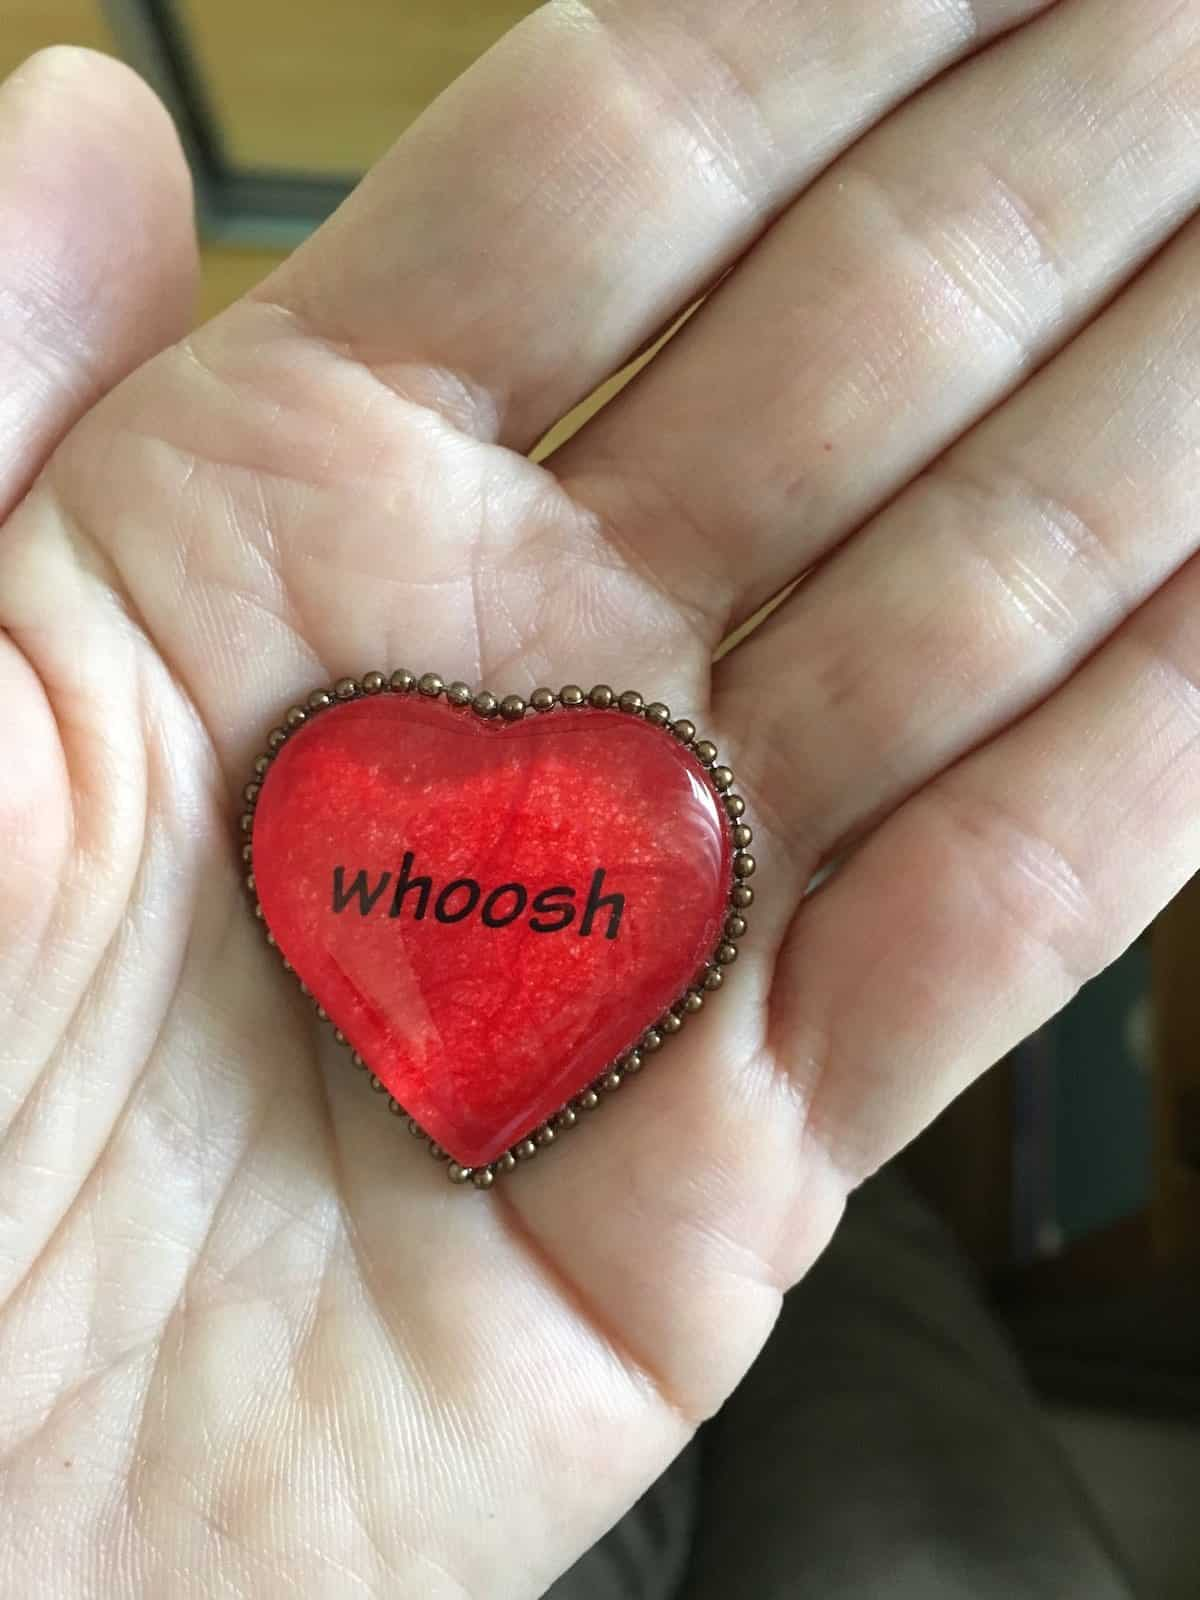 whoosh heart in hand